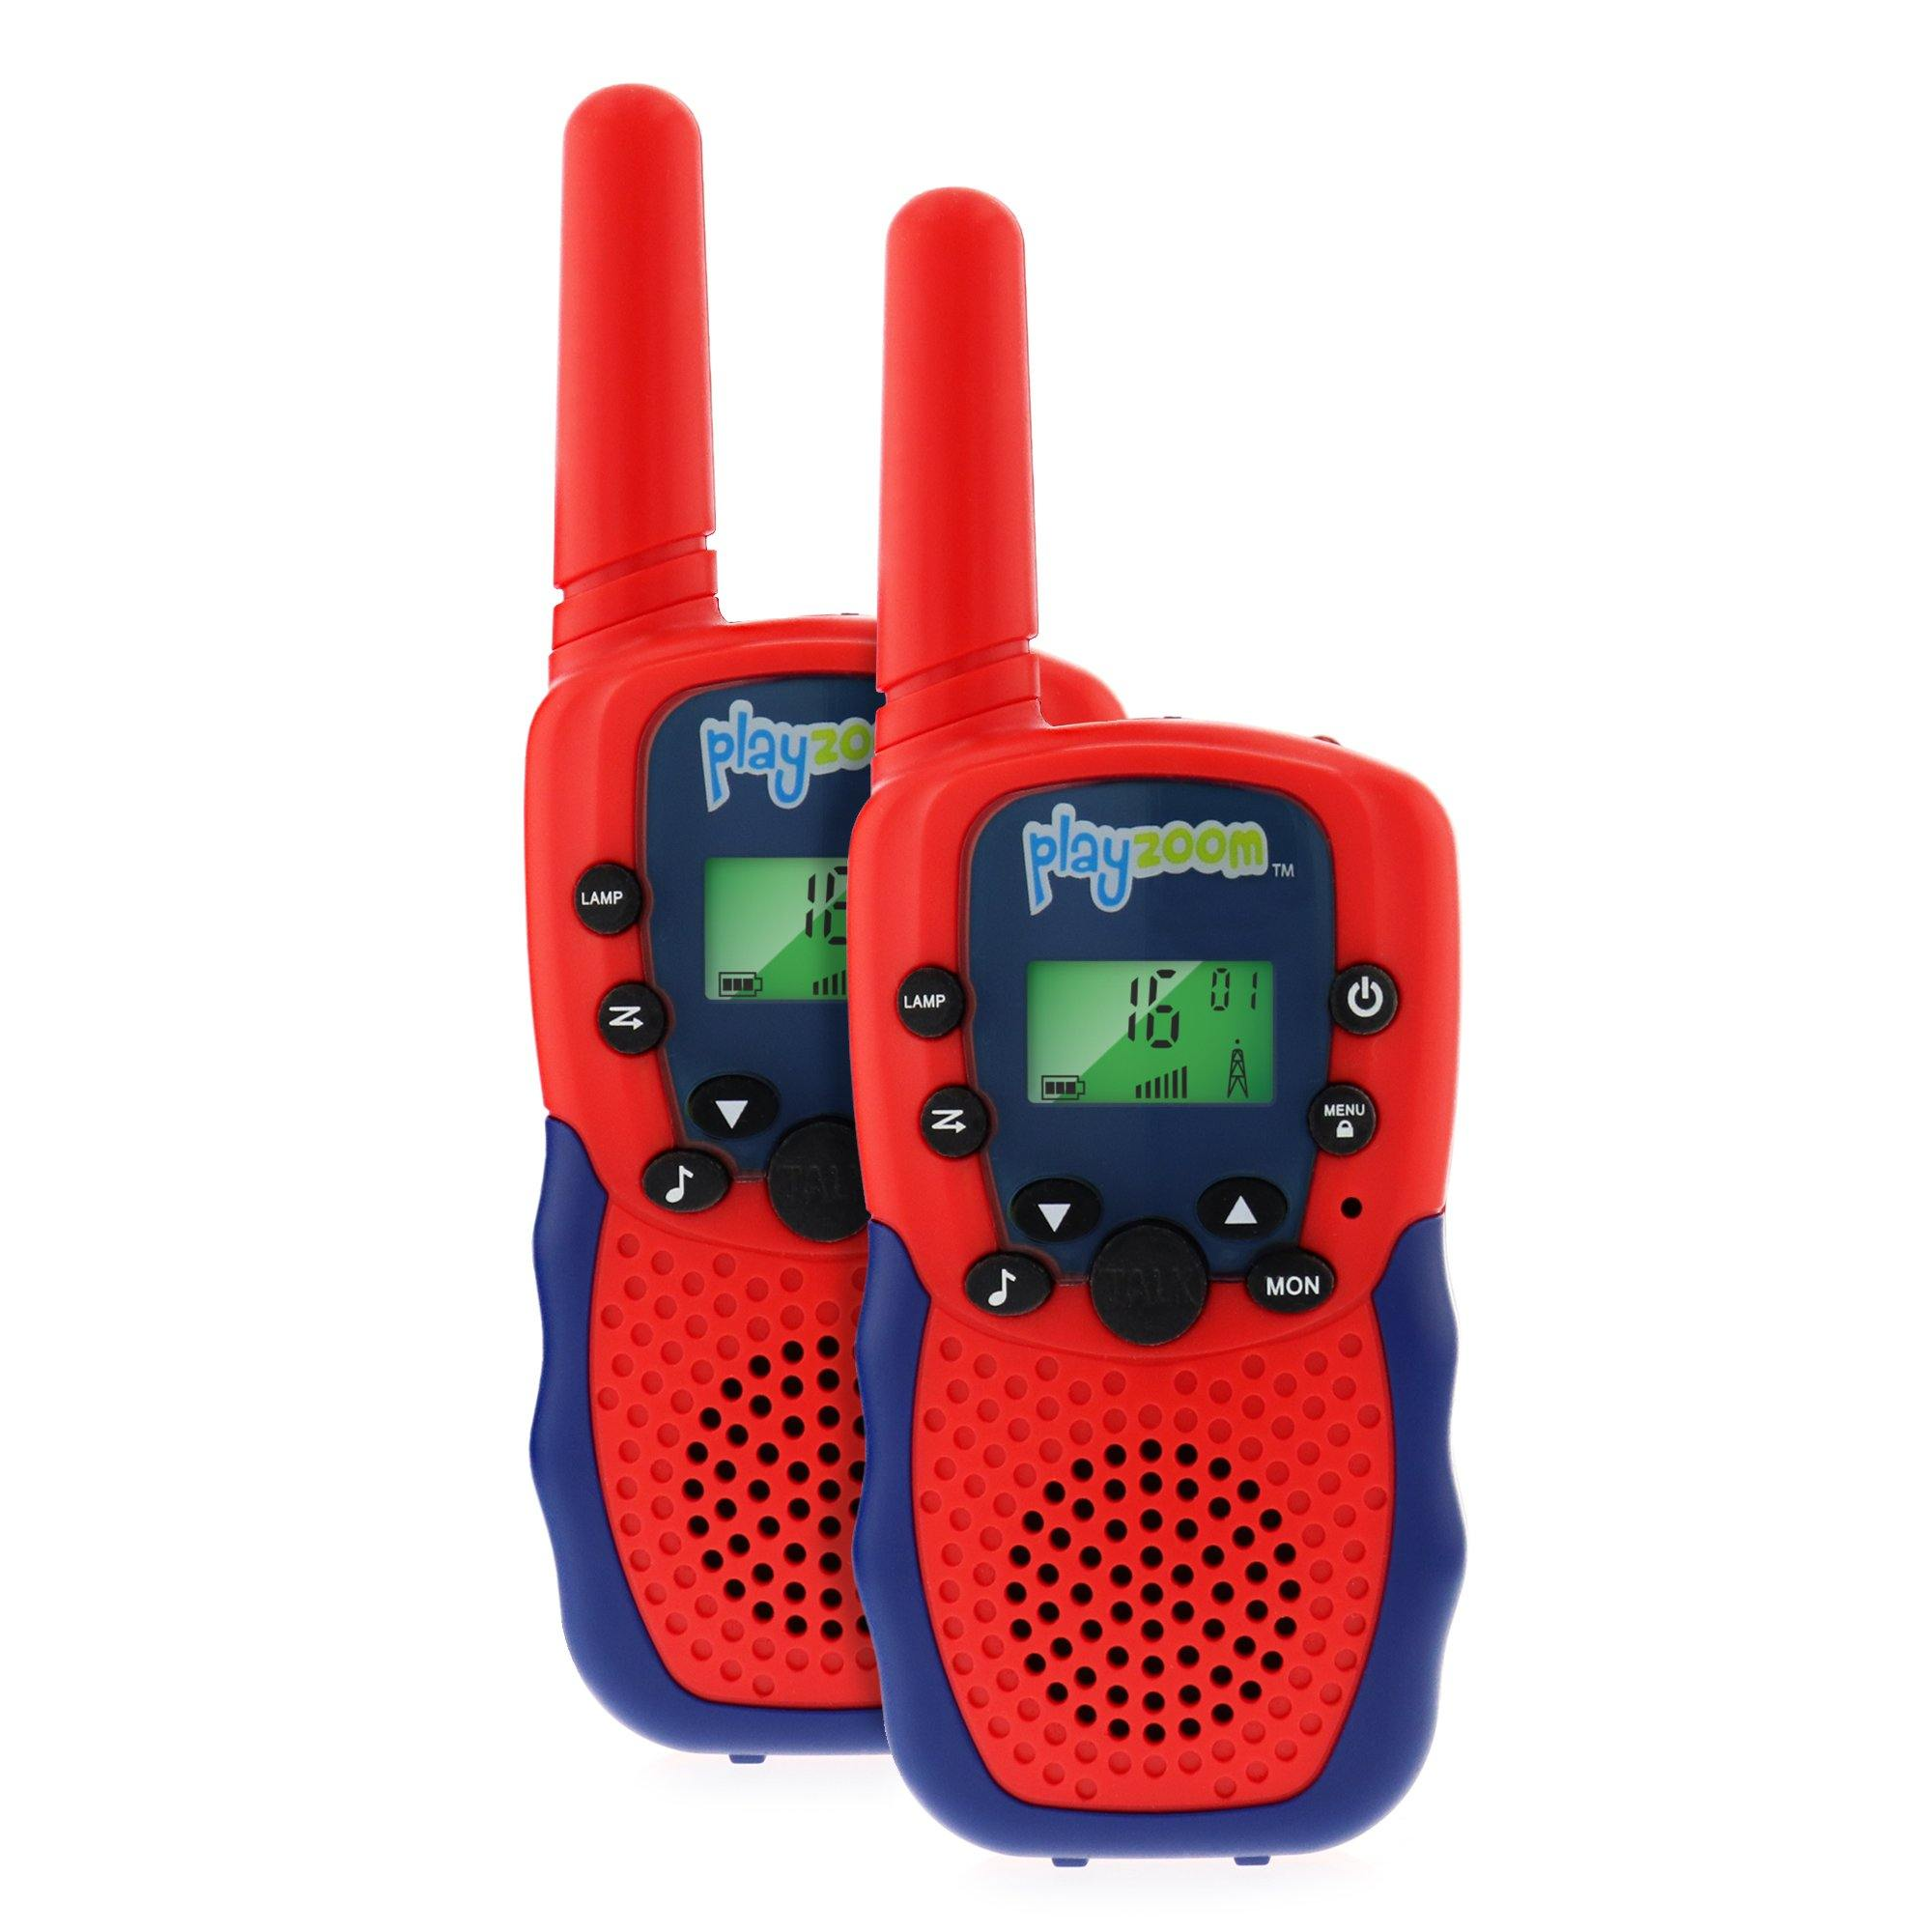 PlayZoom Walkie Talkies 2 pack, Red